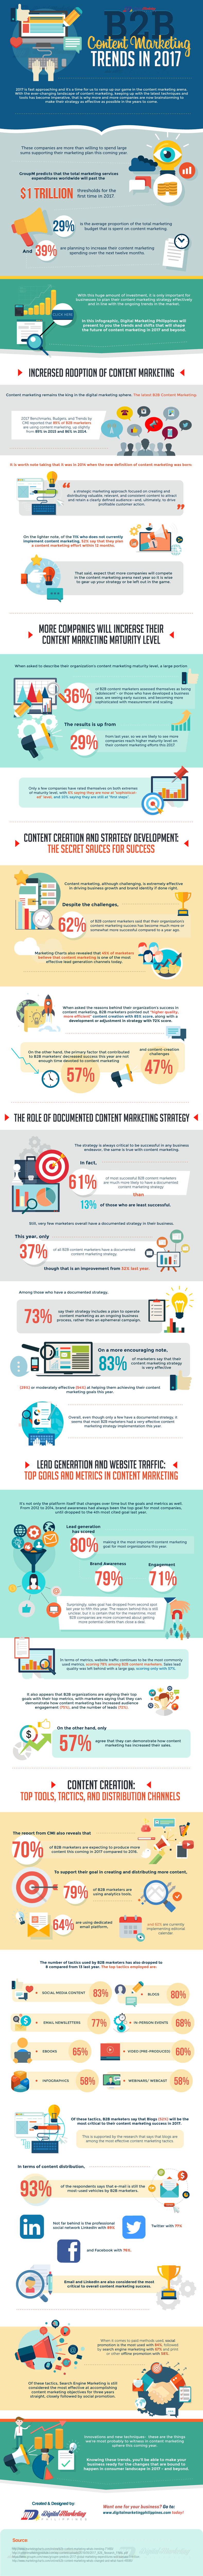 Creating a b2b digital marketing plan for 2017 infographic smart - Digital Marketing Philippines Has Put Together This New Infographic Looking At Key Content Marketing Trends Set To Feature Prominently In